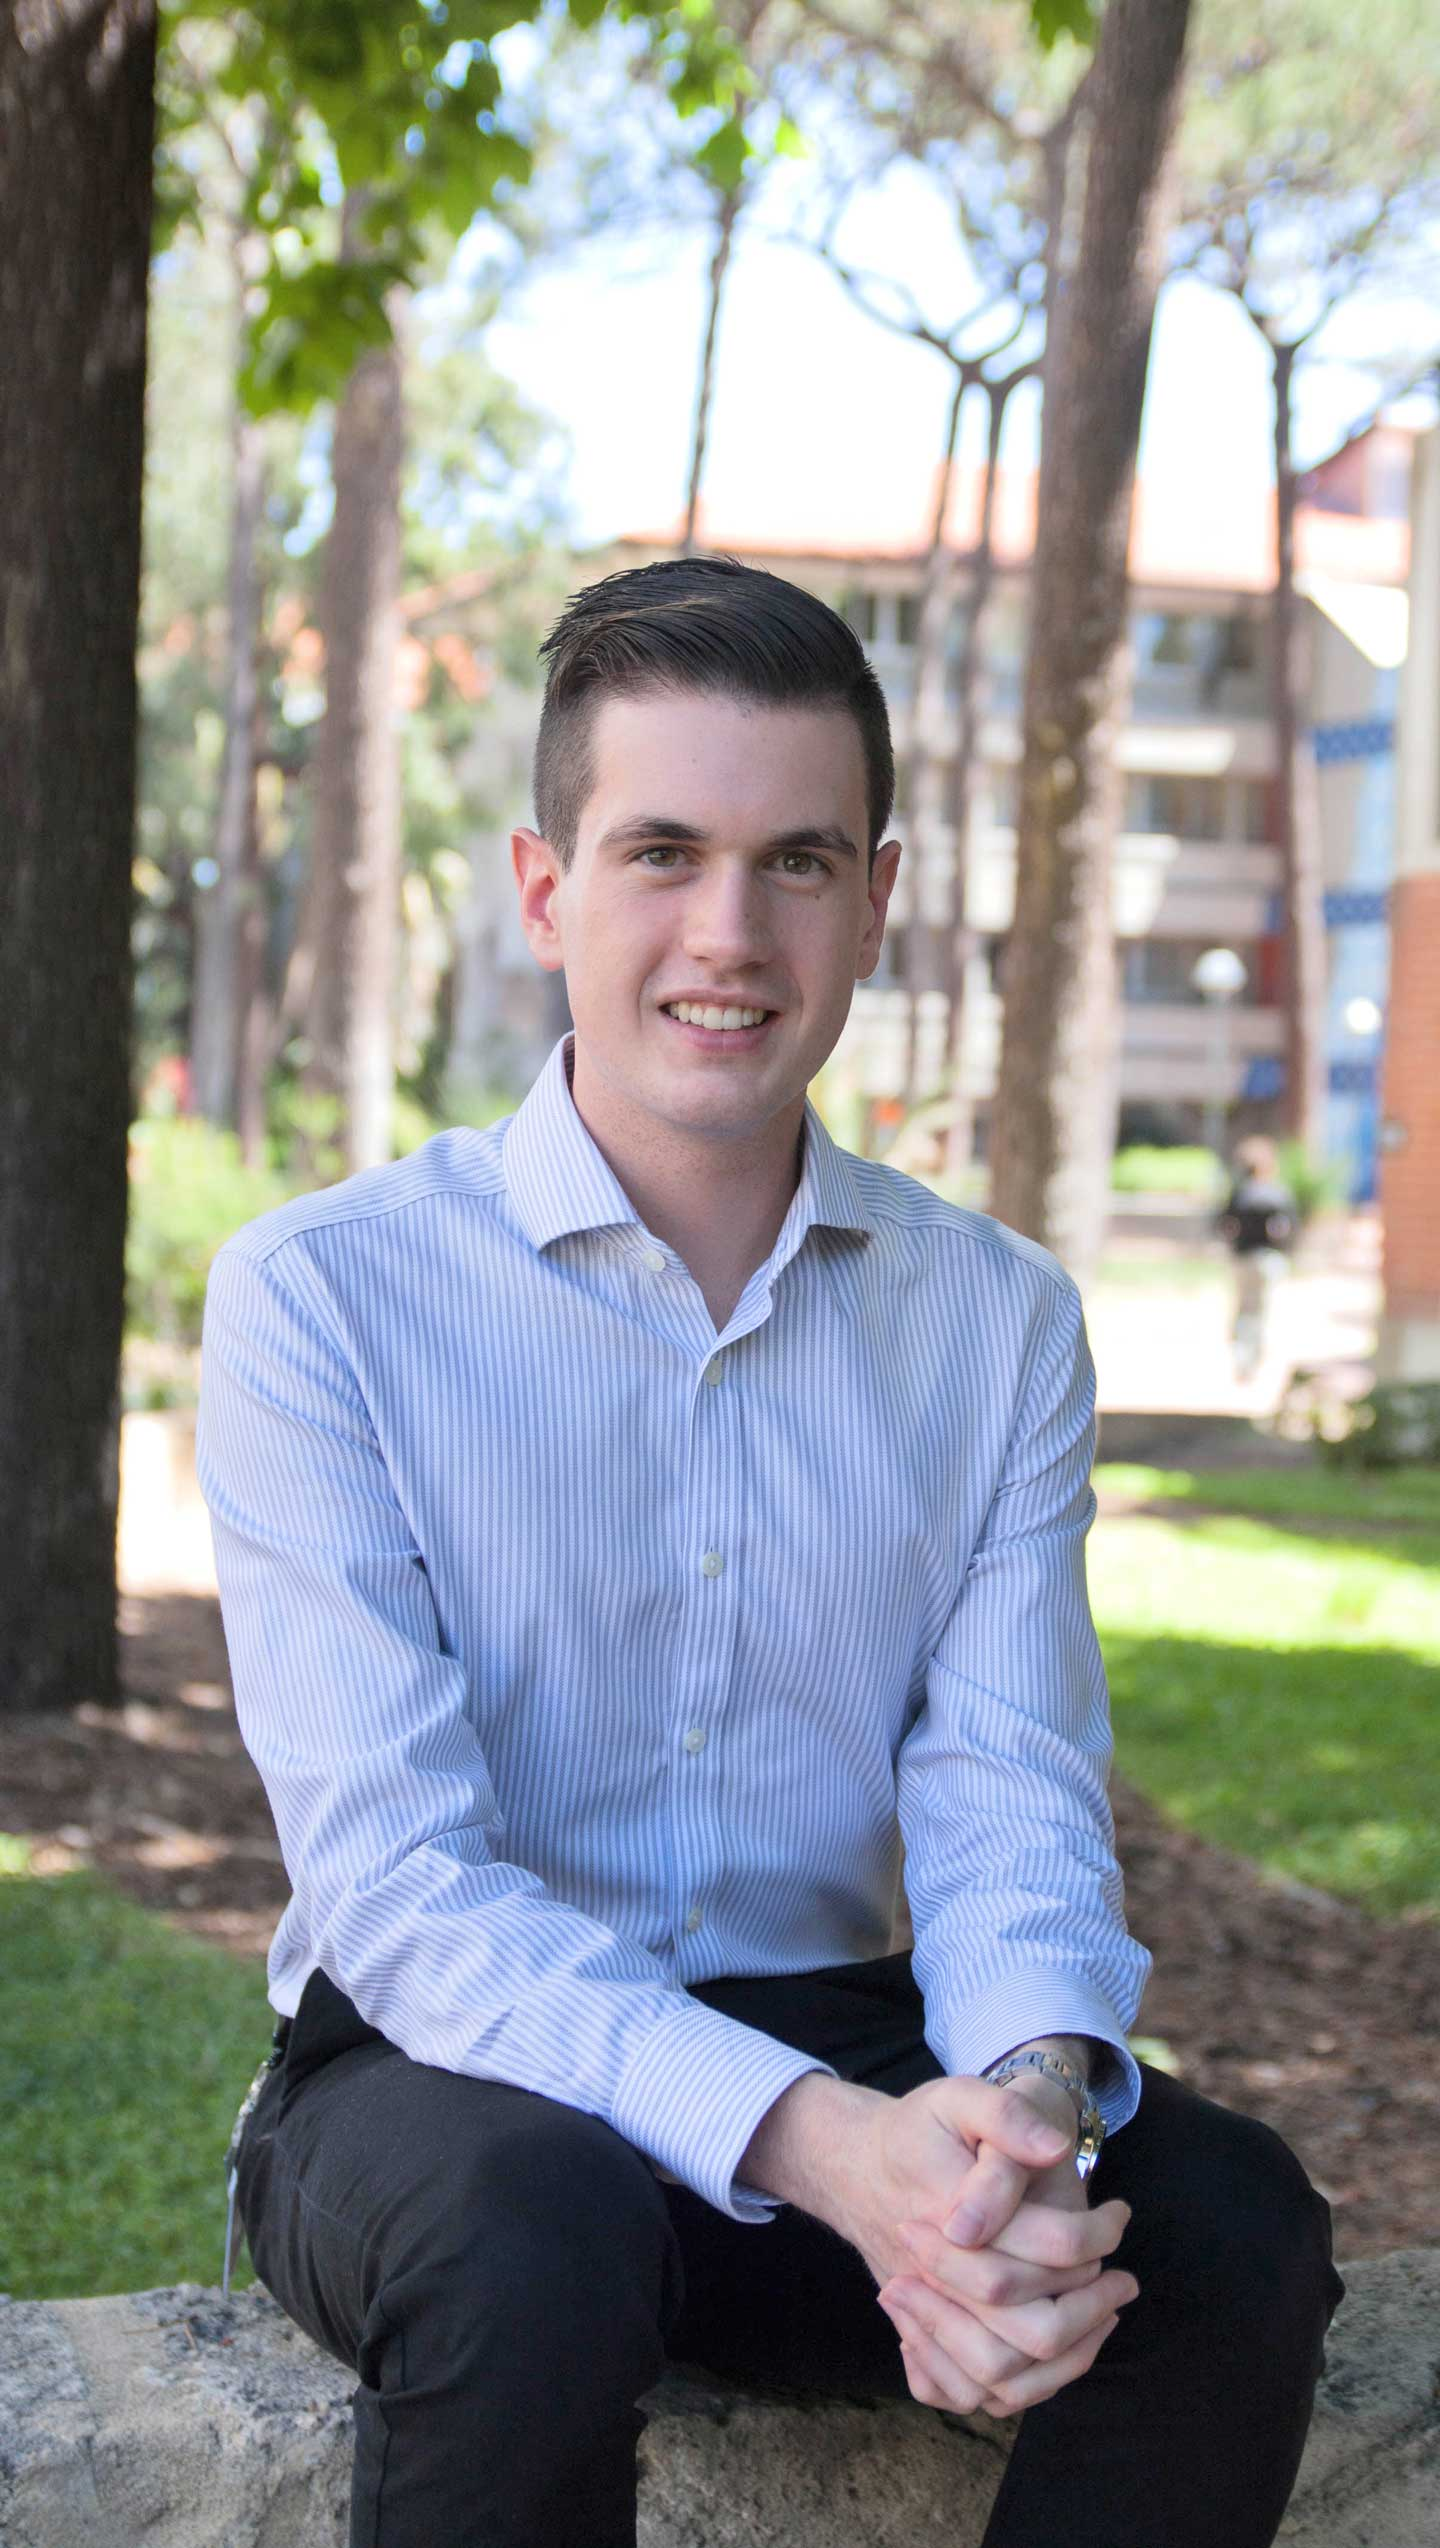 Curtin Commerce student Christian Ford sitting on a brick wall against a background of trees and buildings